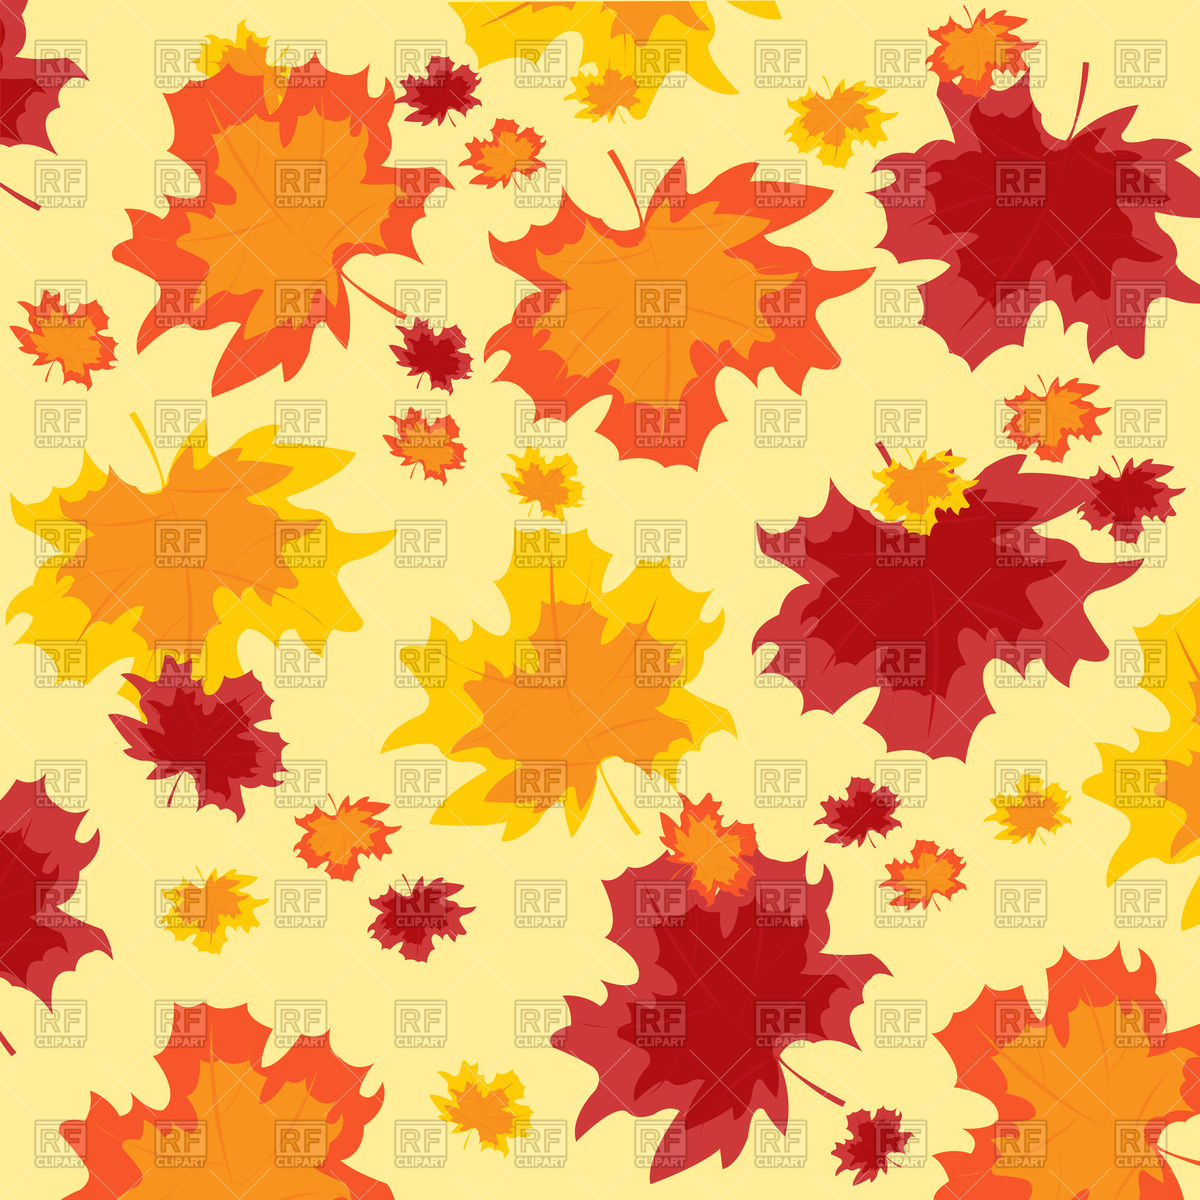 Autumn background with leaves Vector Image #91943.